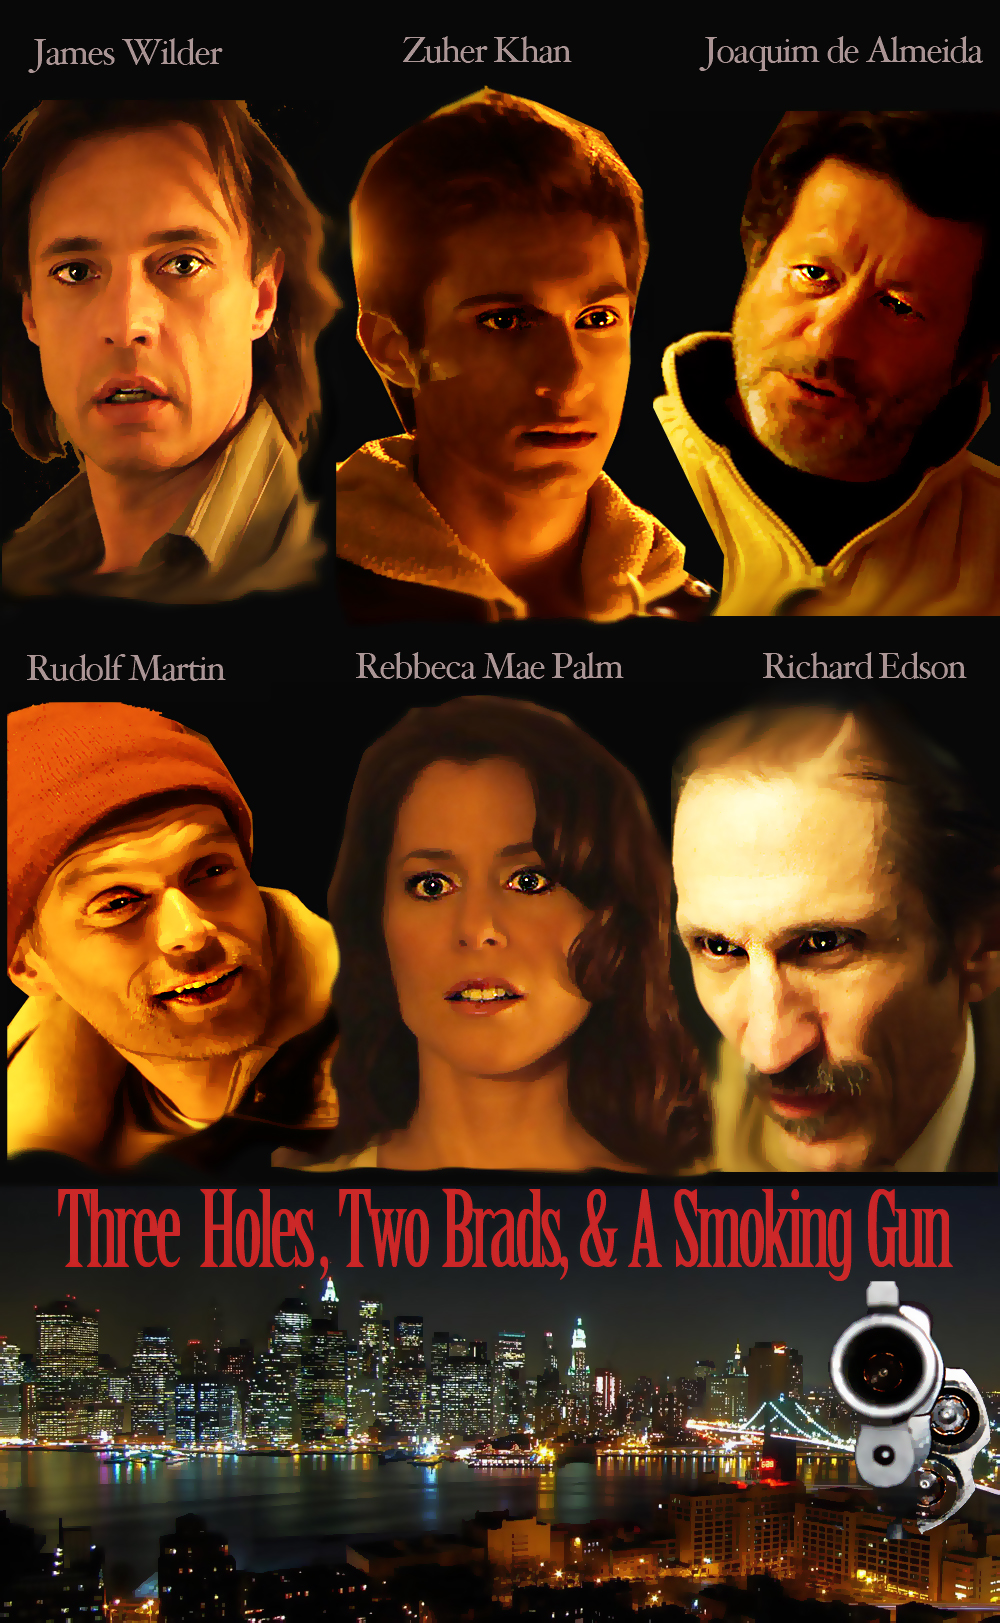 Three Holes, Two Brads and a Smoking Gun official poster 1